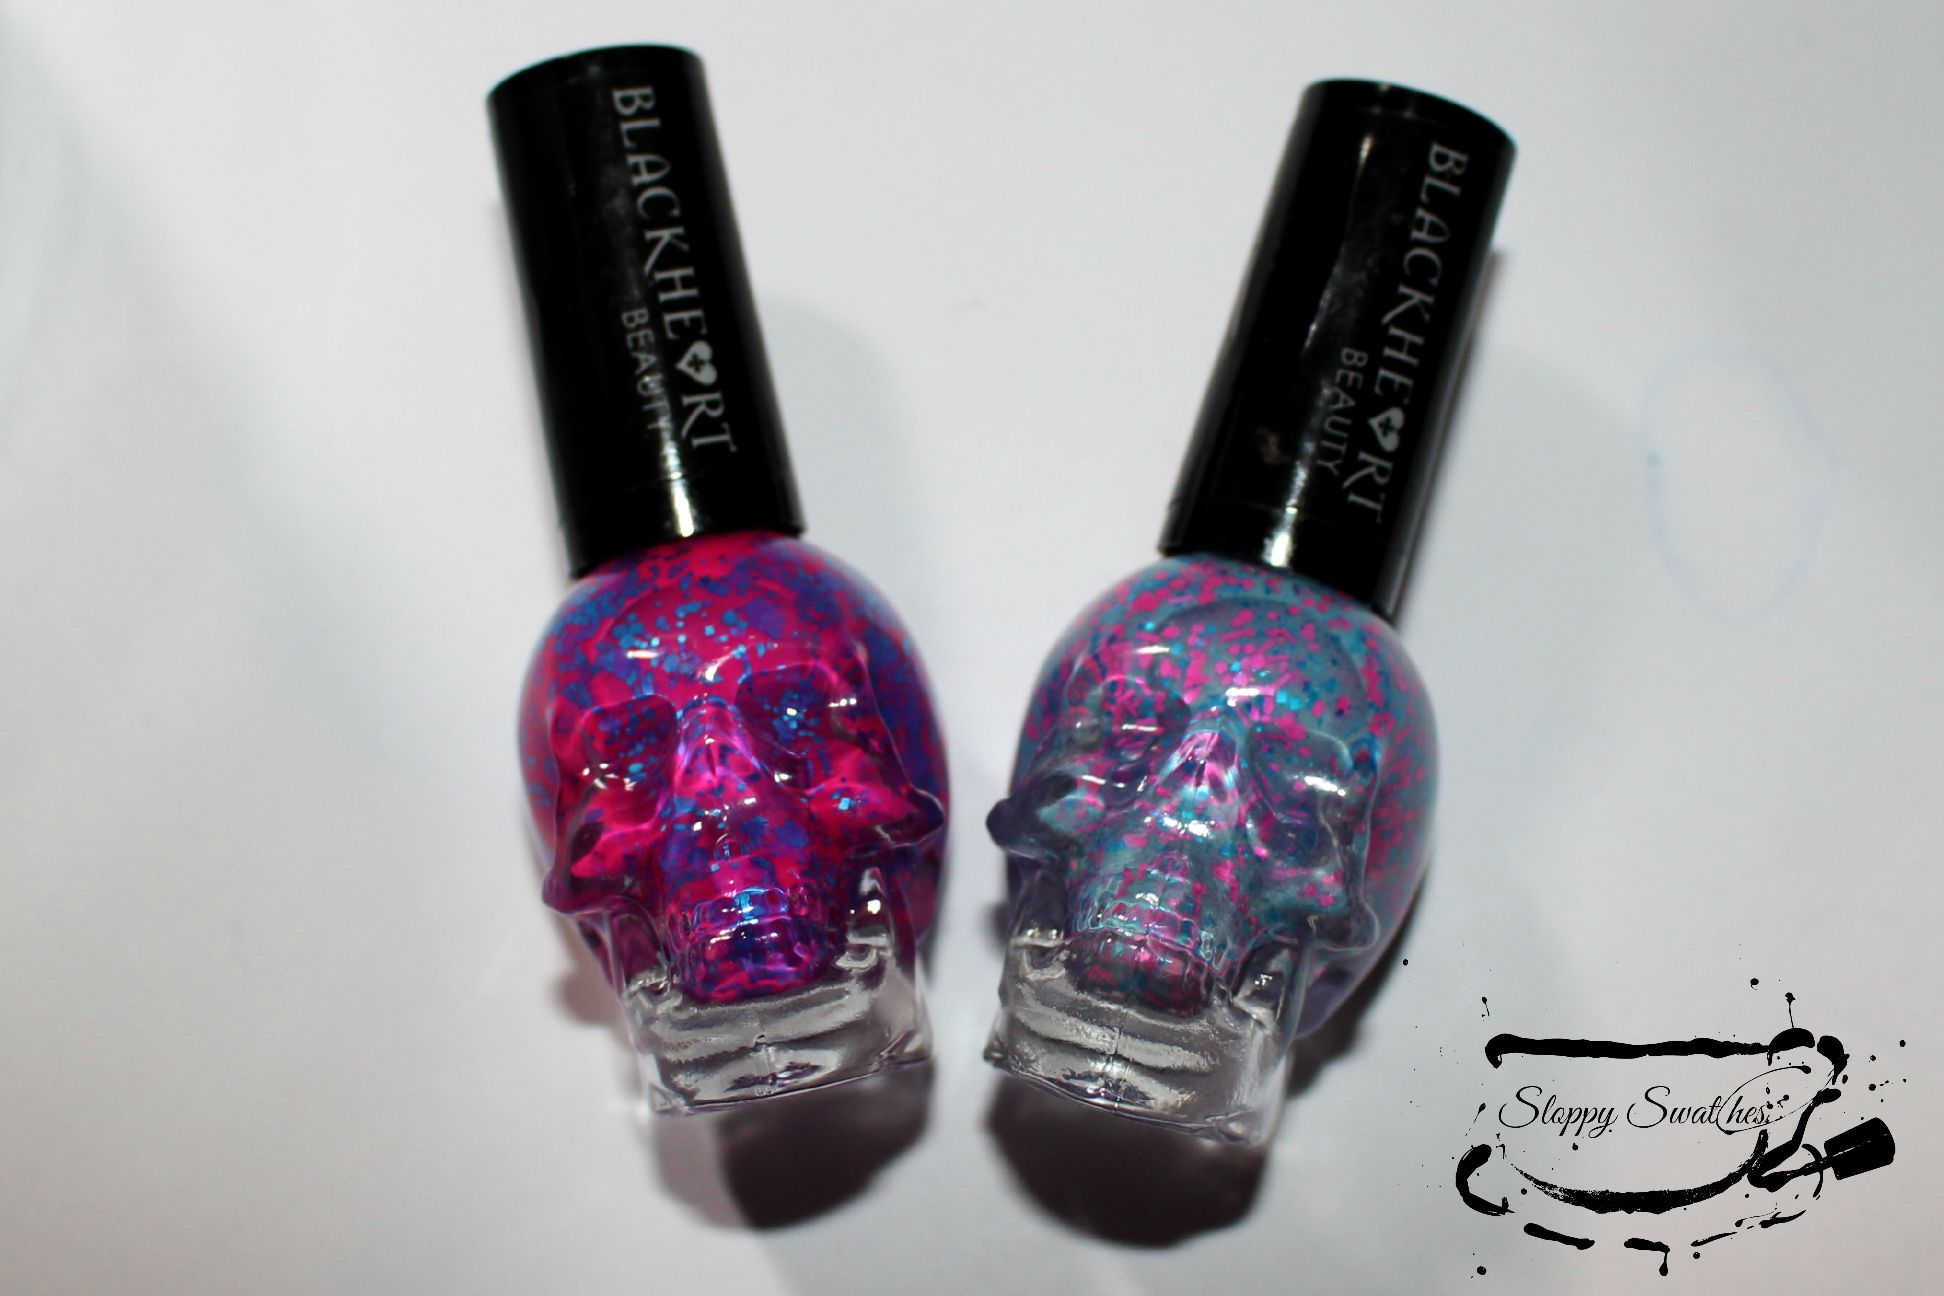 Blackheart Beauty Polish Swatches – Nail art and Swatches